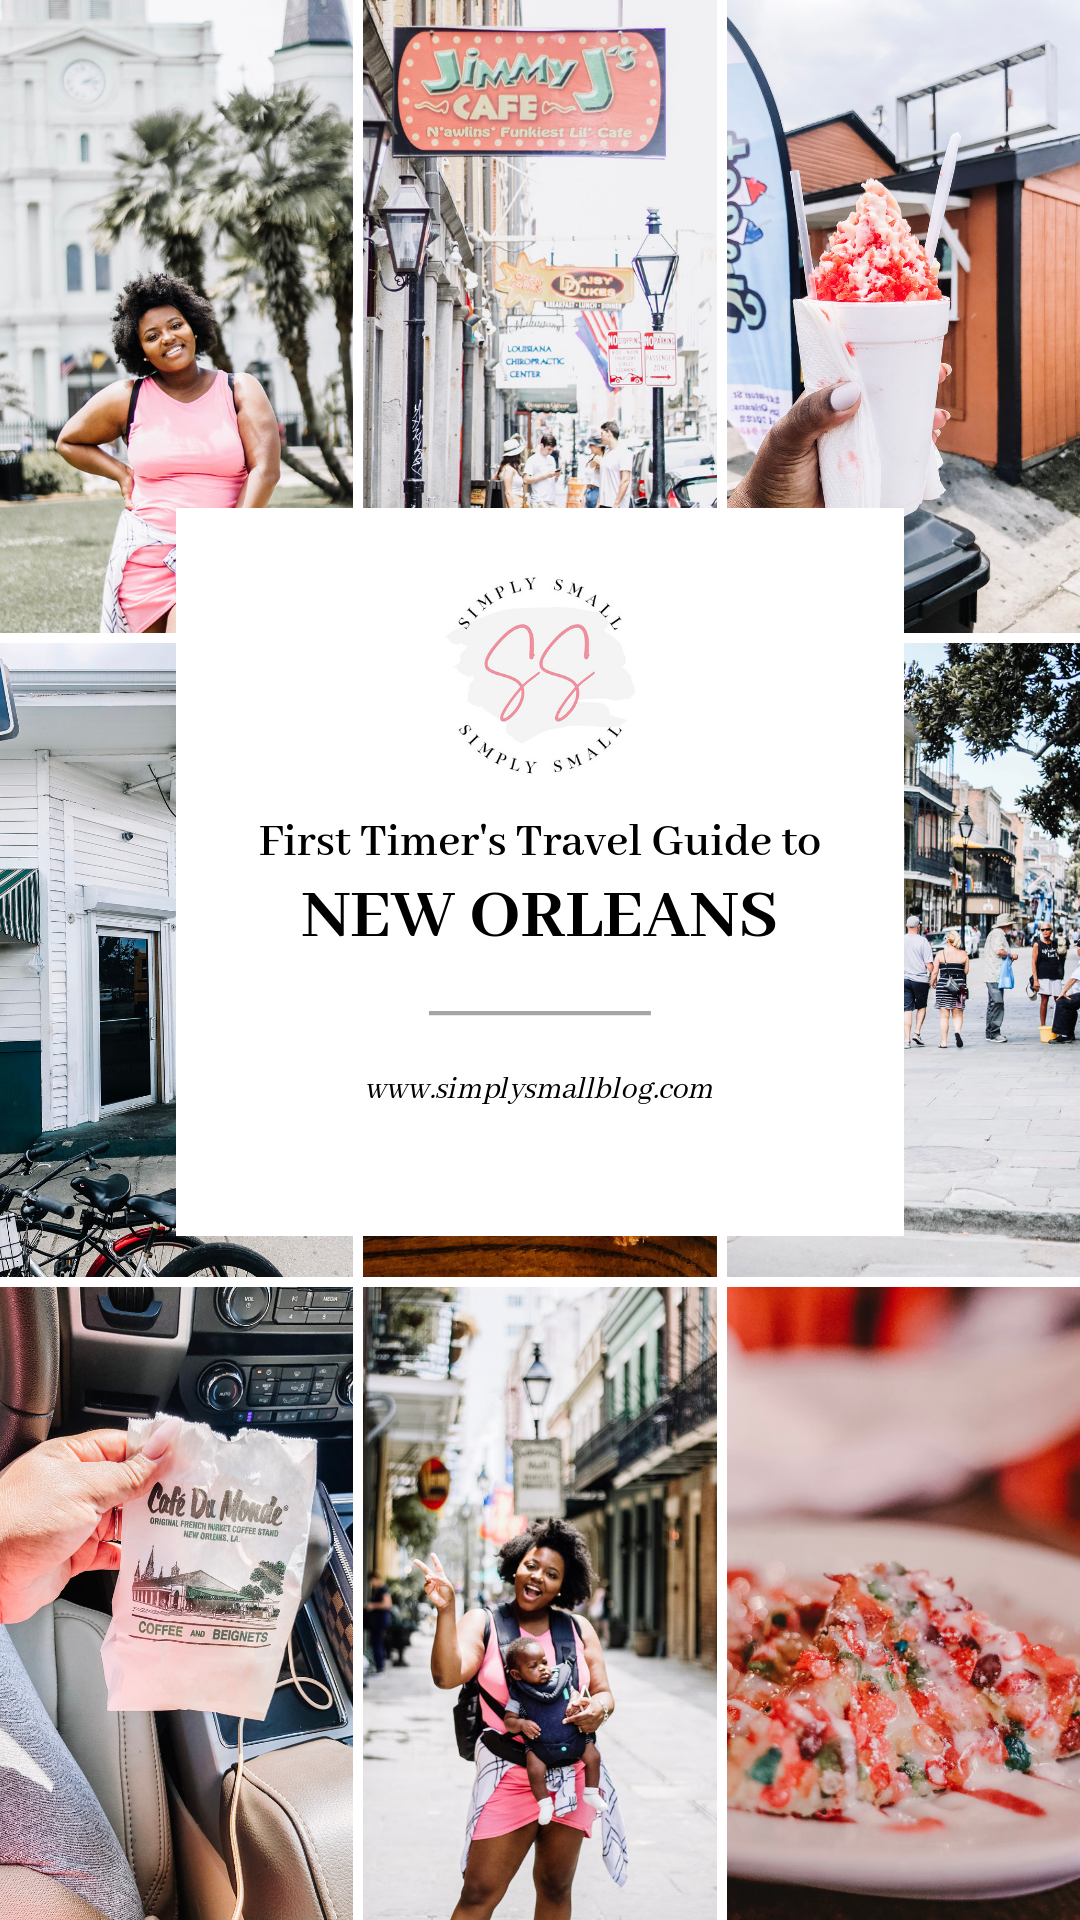 First Timer's Travel Guide to New Orleans